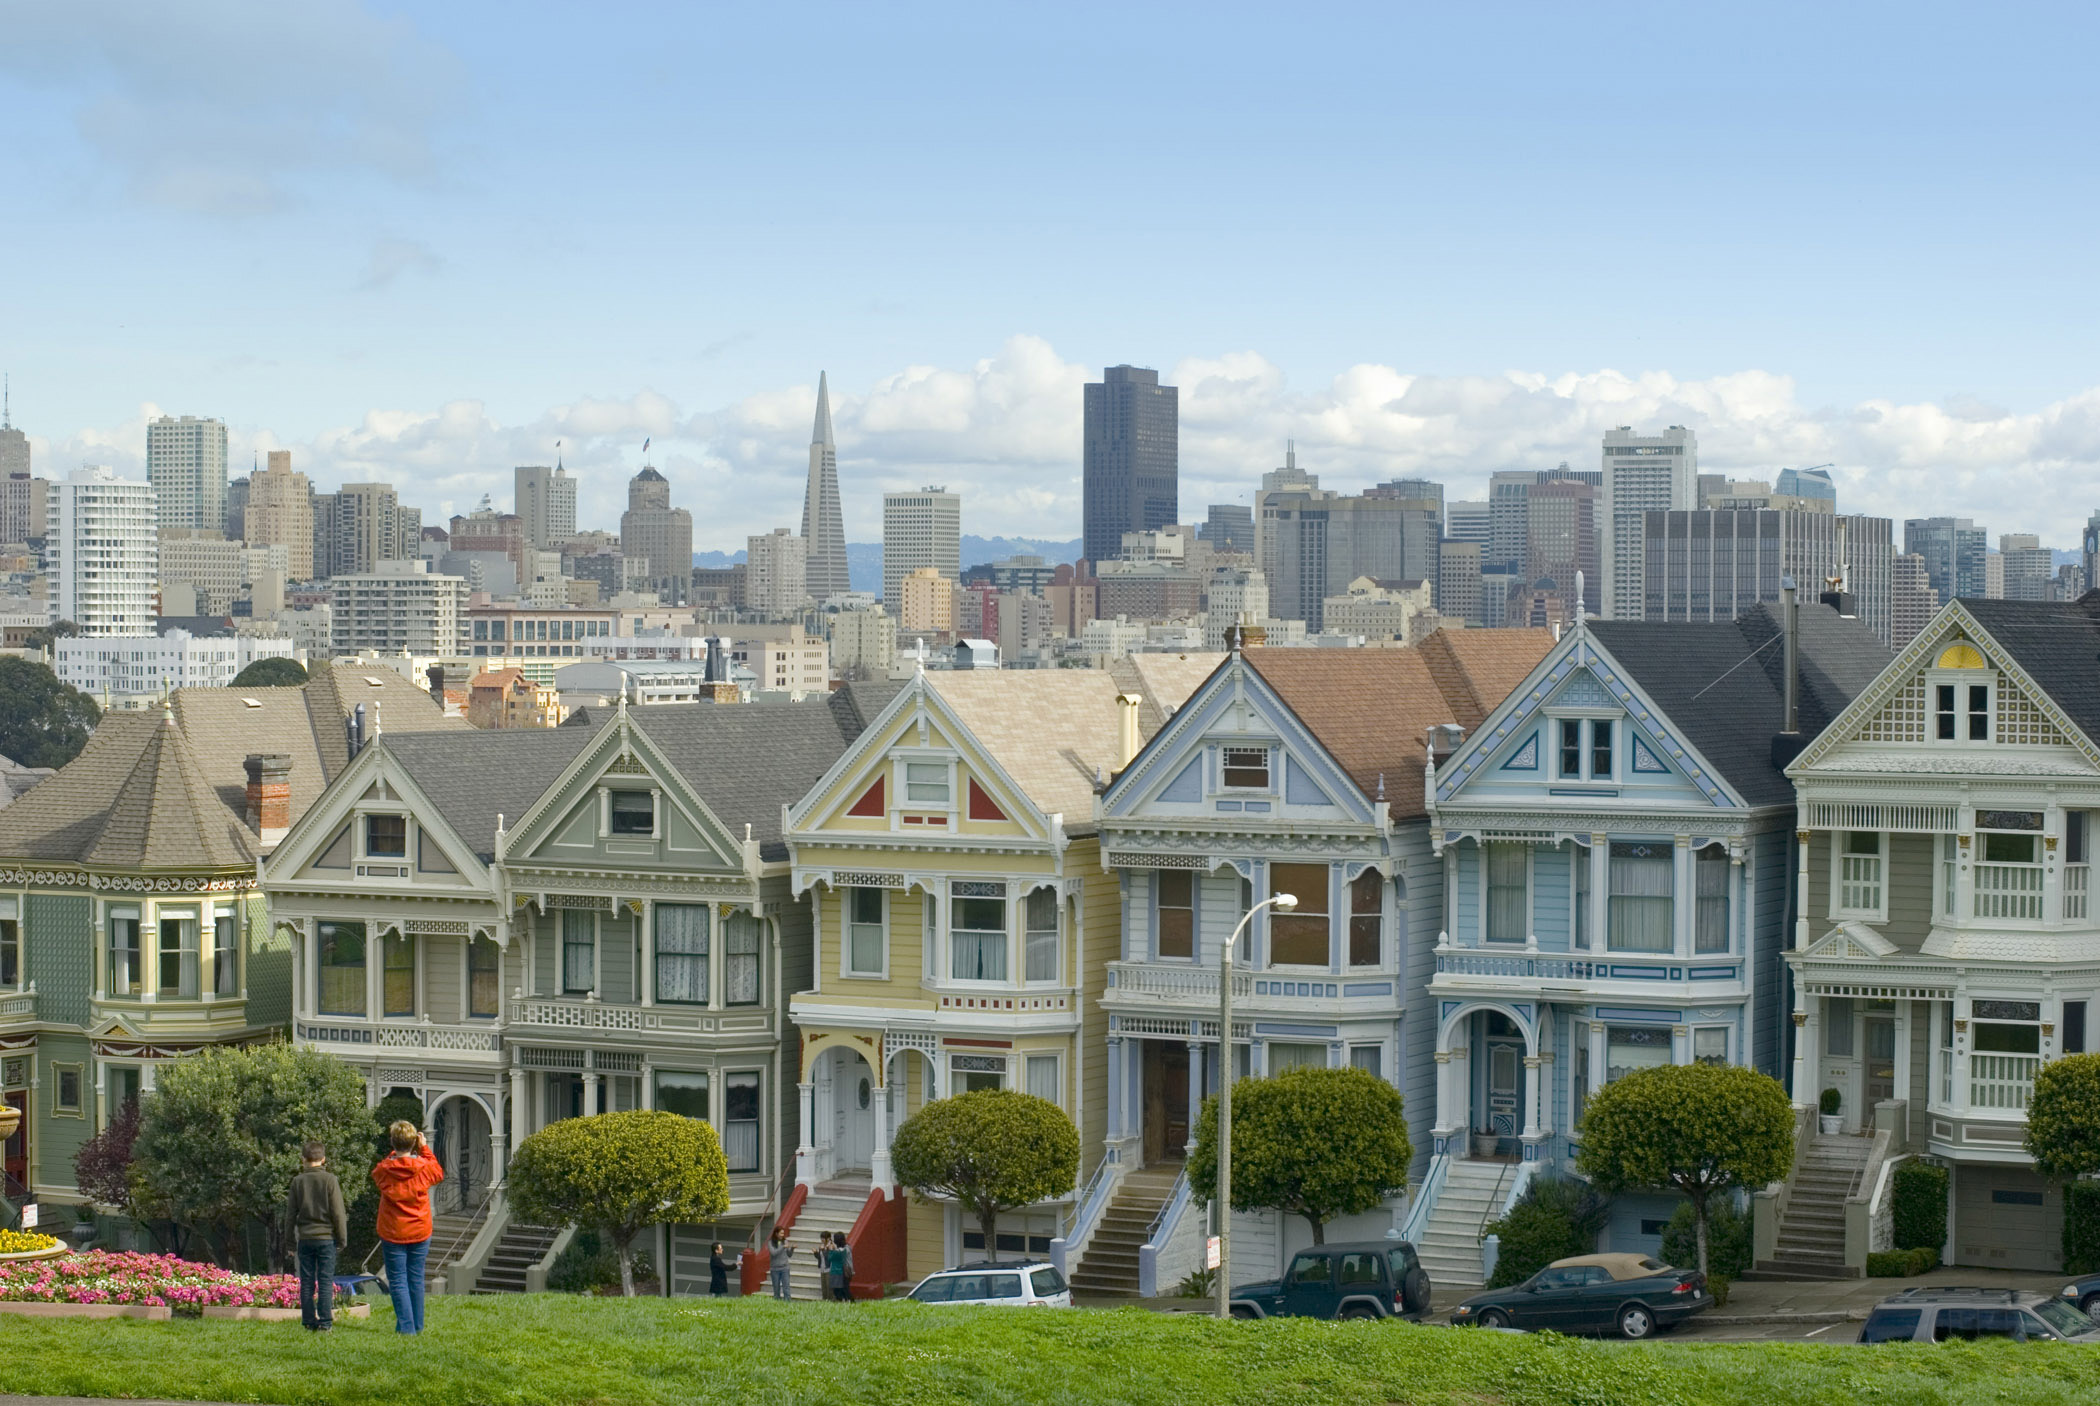 Historic Architectural Residences and Grassy Park At Alamo Square San Francisco